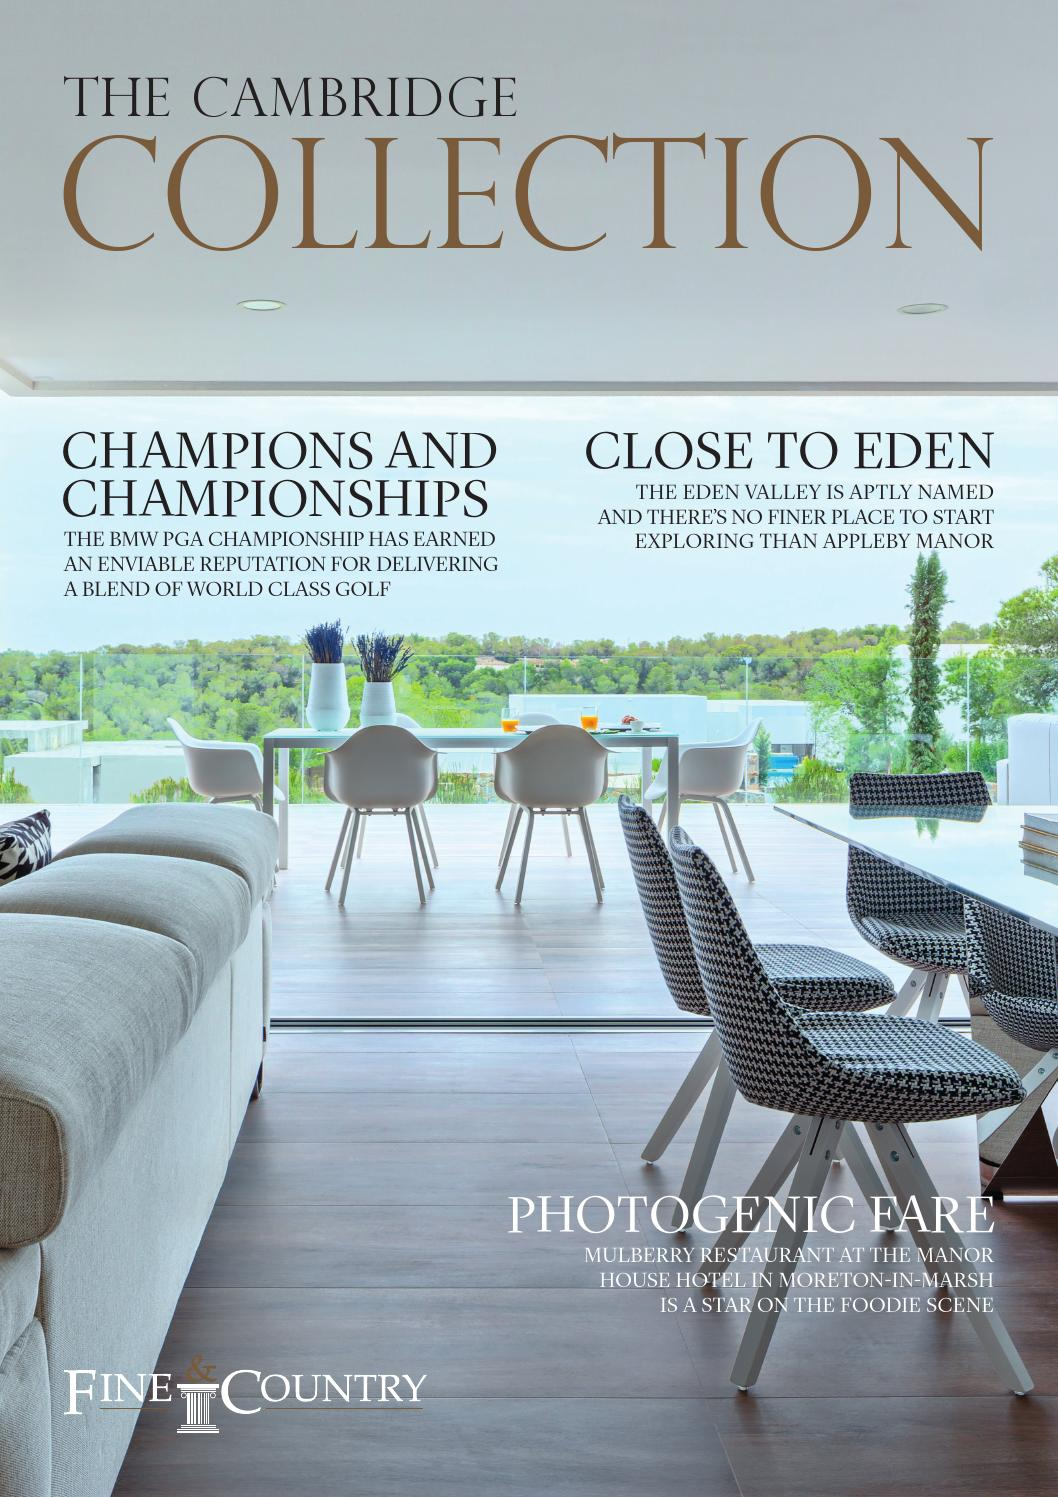 Cambridge The Collection Issue 1 2016 by Fine & Country - issuu